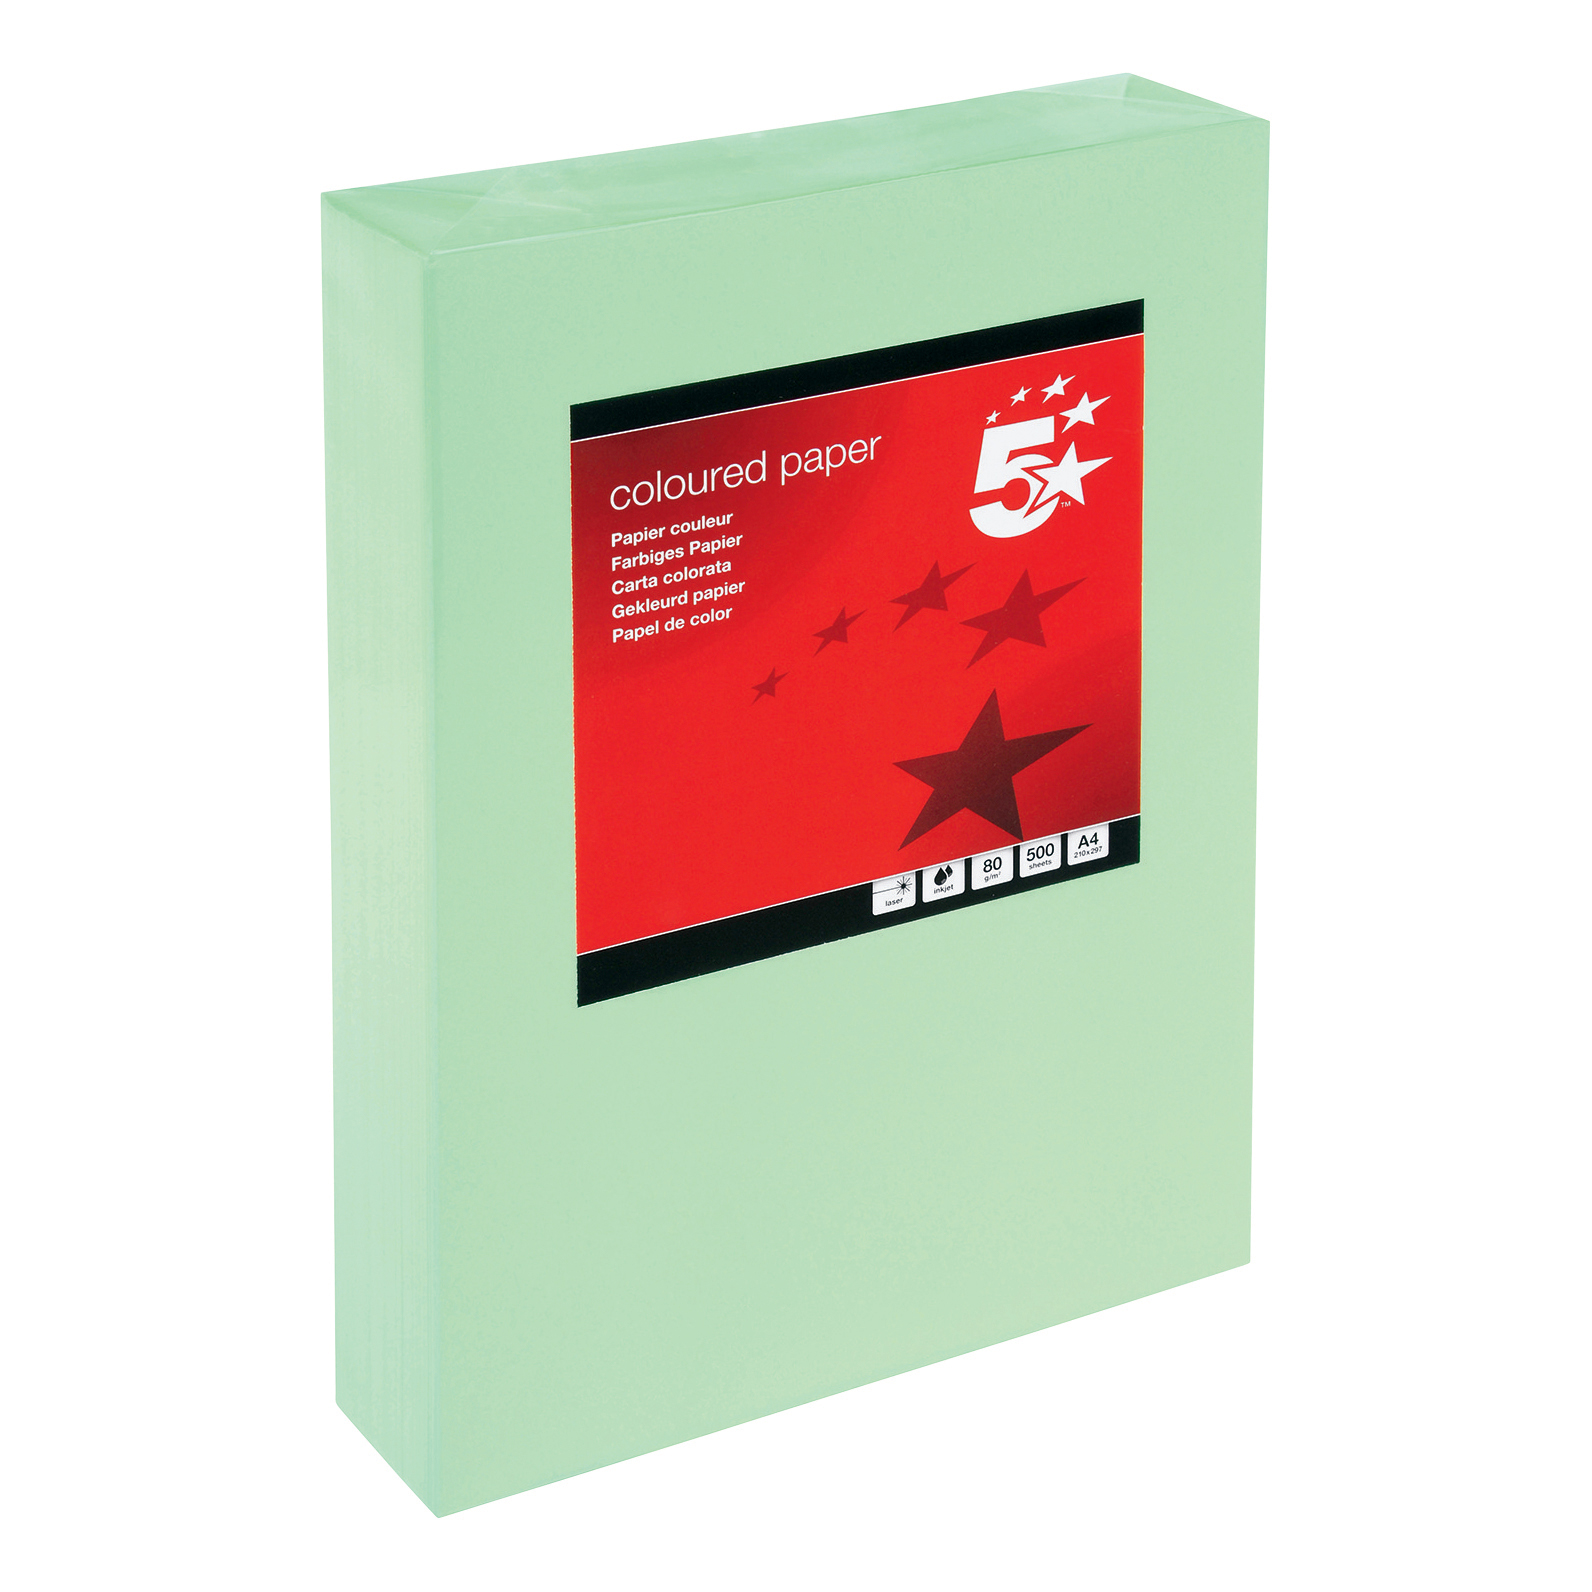 A4 5 Star Office Coloured Copier Paper Multifunctional Ream-Wrapped 80gsm A4 Medium Green [500 Sheets]